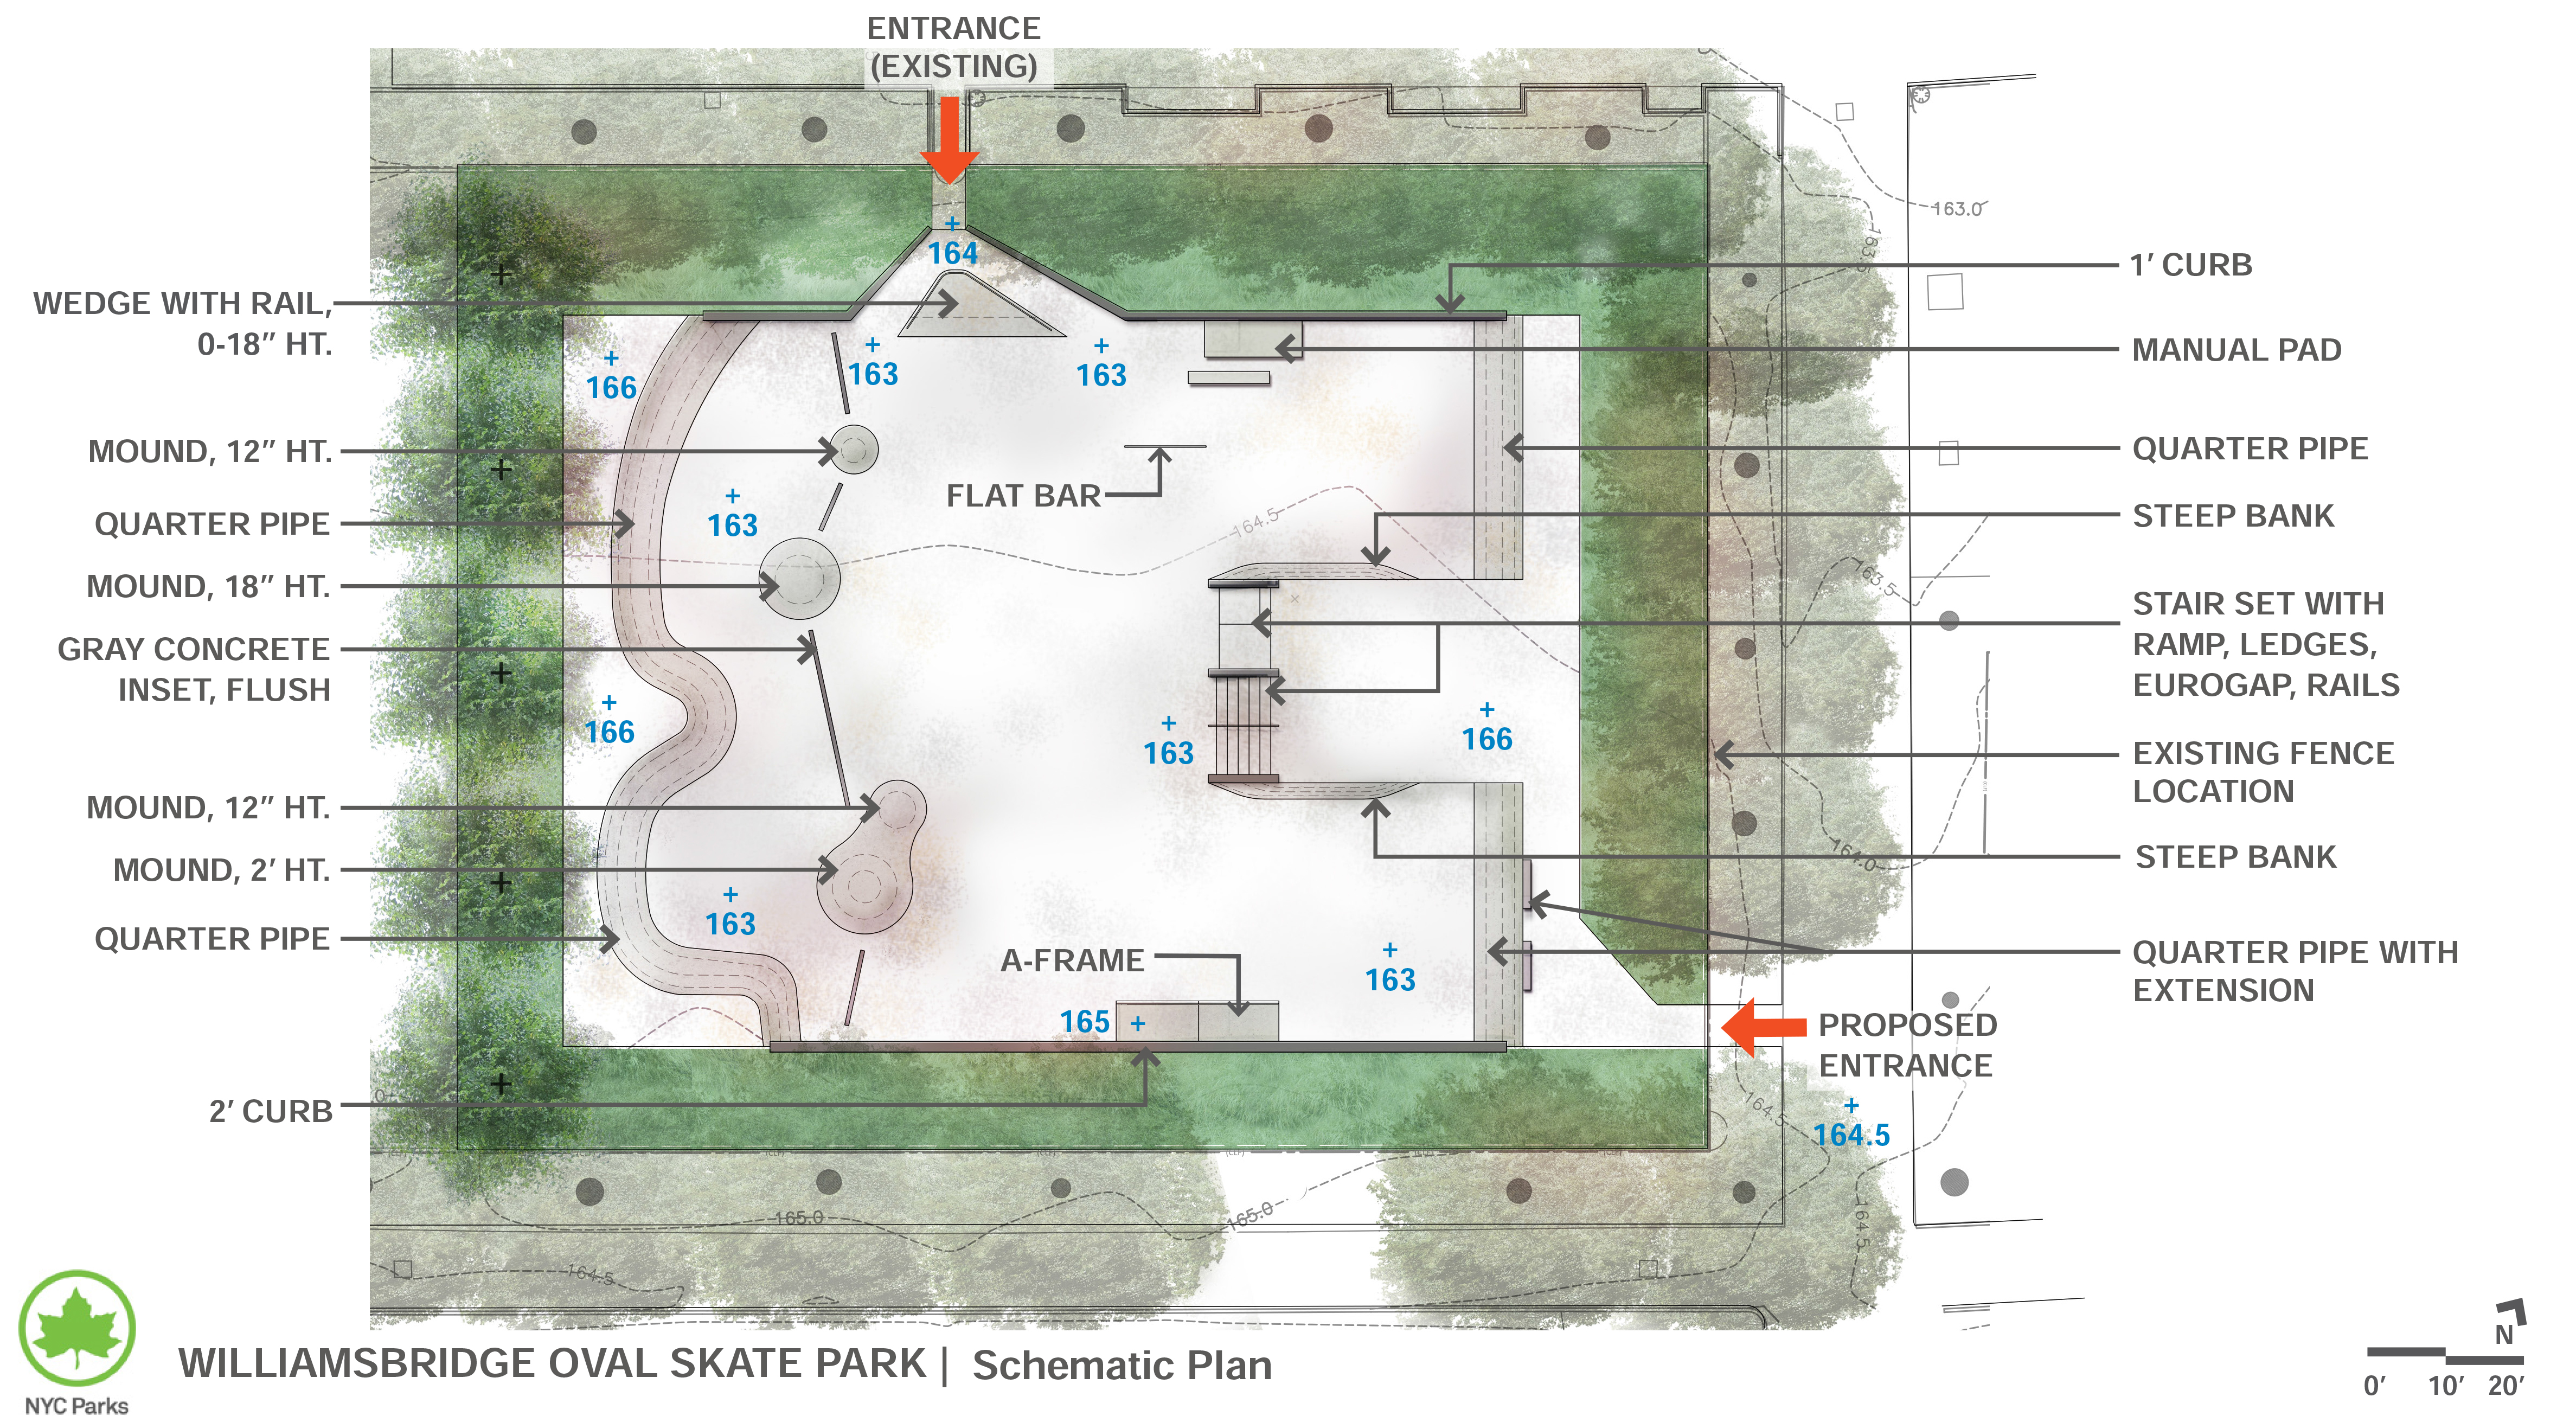 Design of Williamsbridge Oval Skate Park Construction